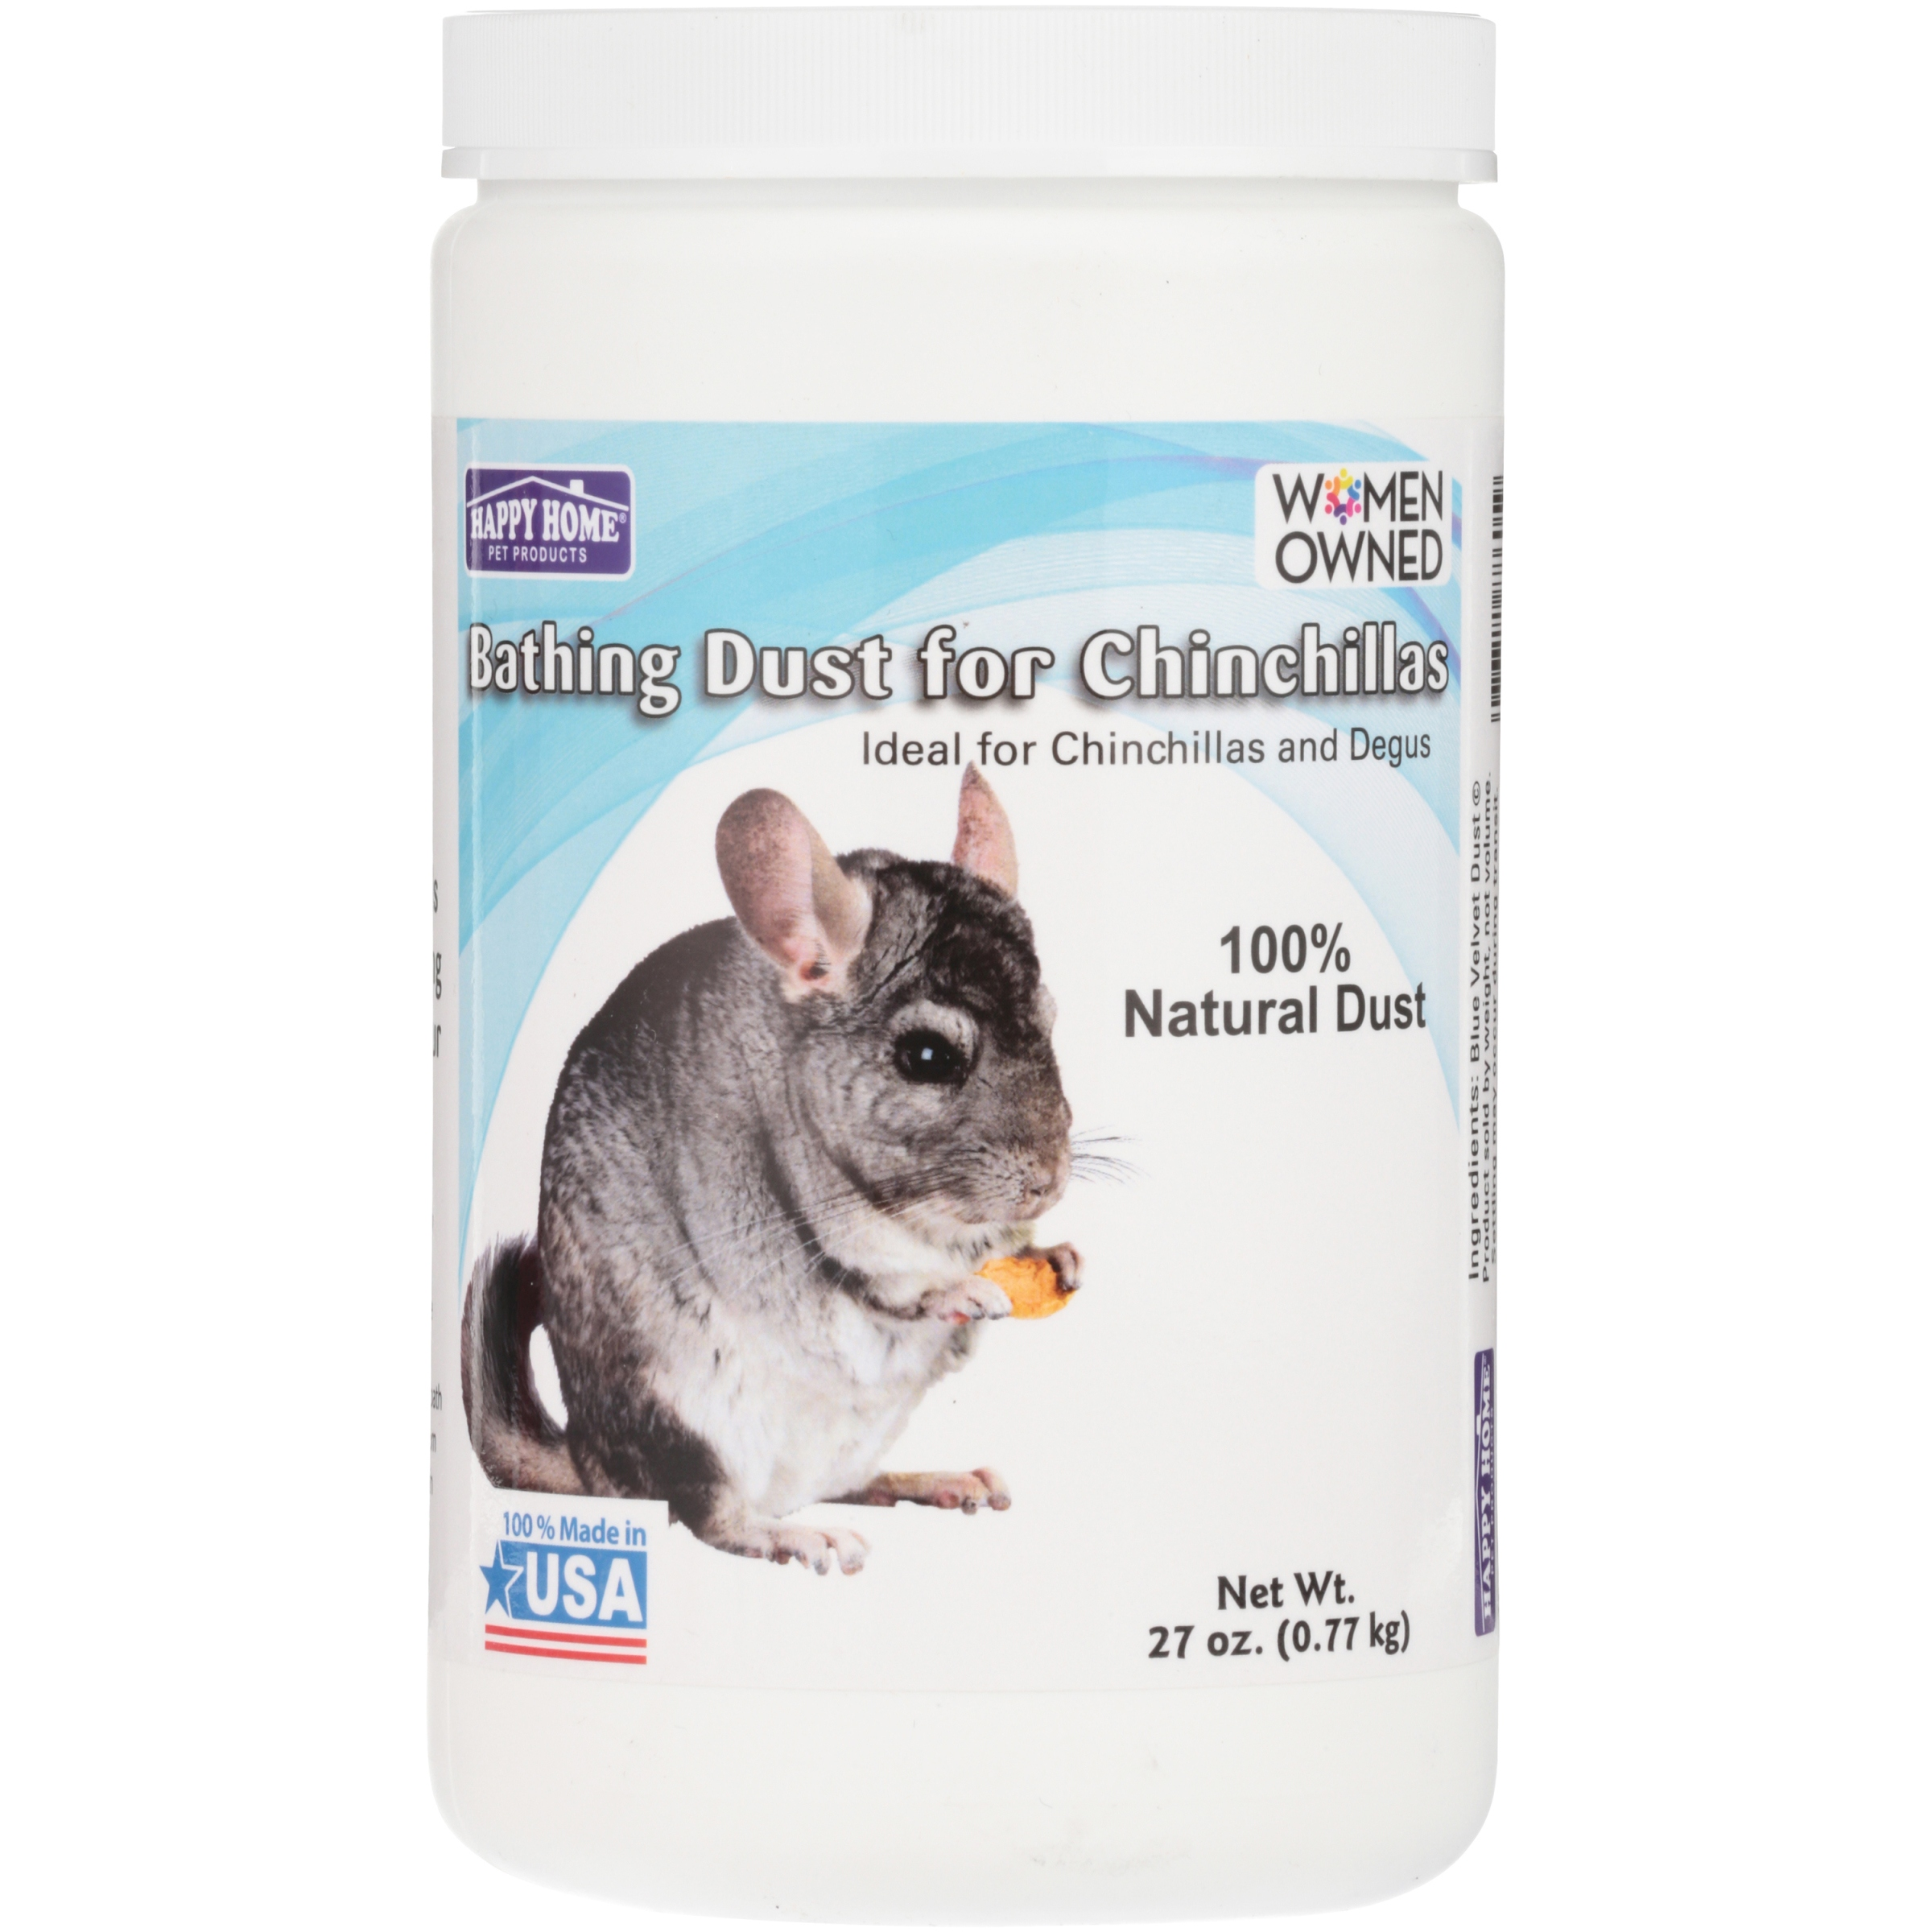 Happy Home® Bathing Dust for Chinchillas 27 oz. Jar